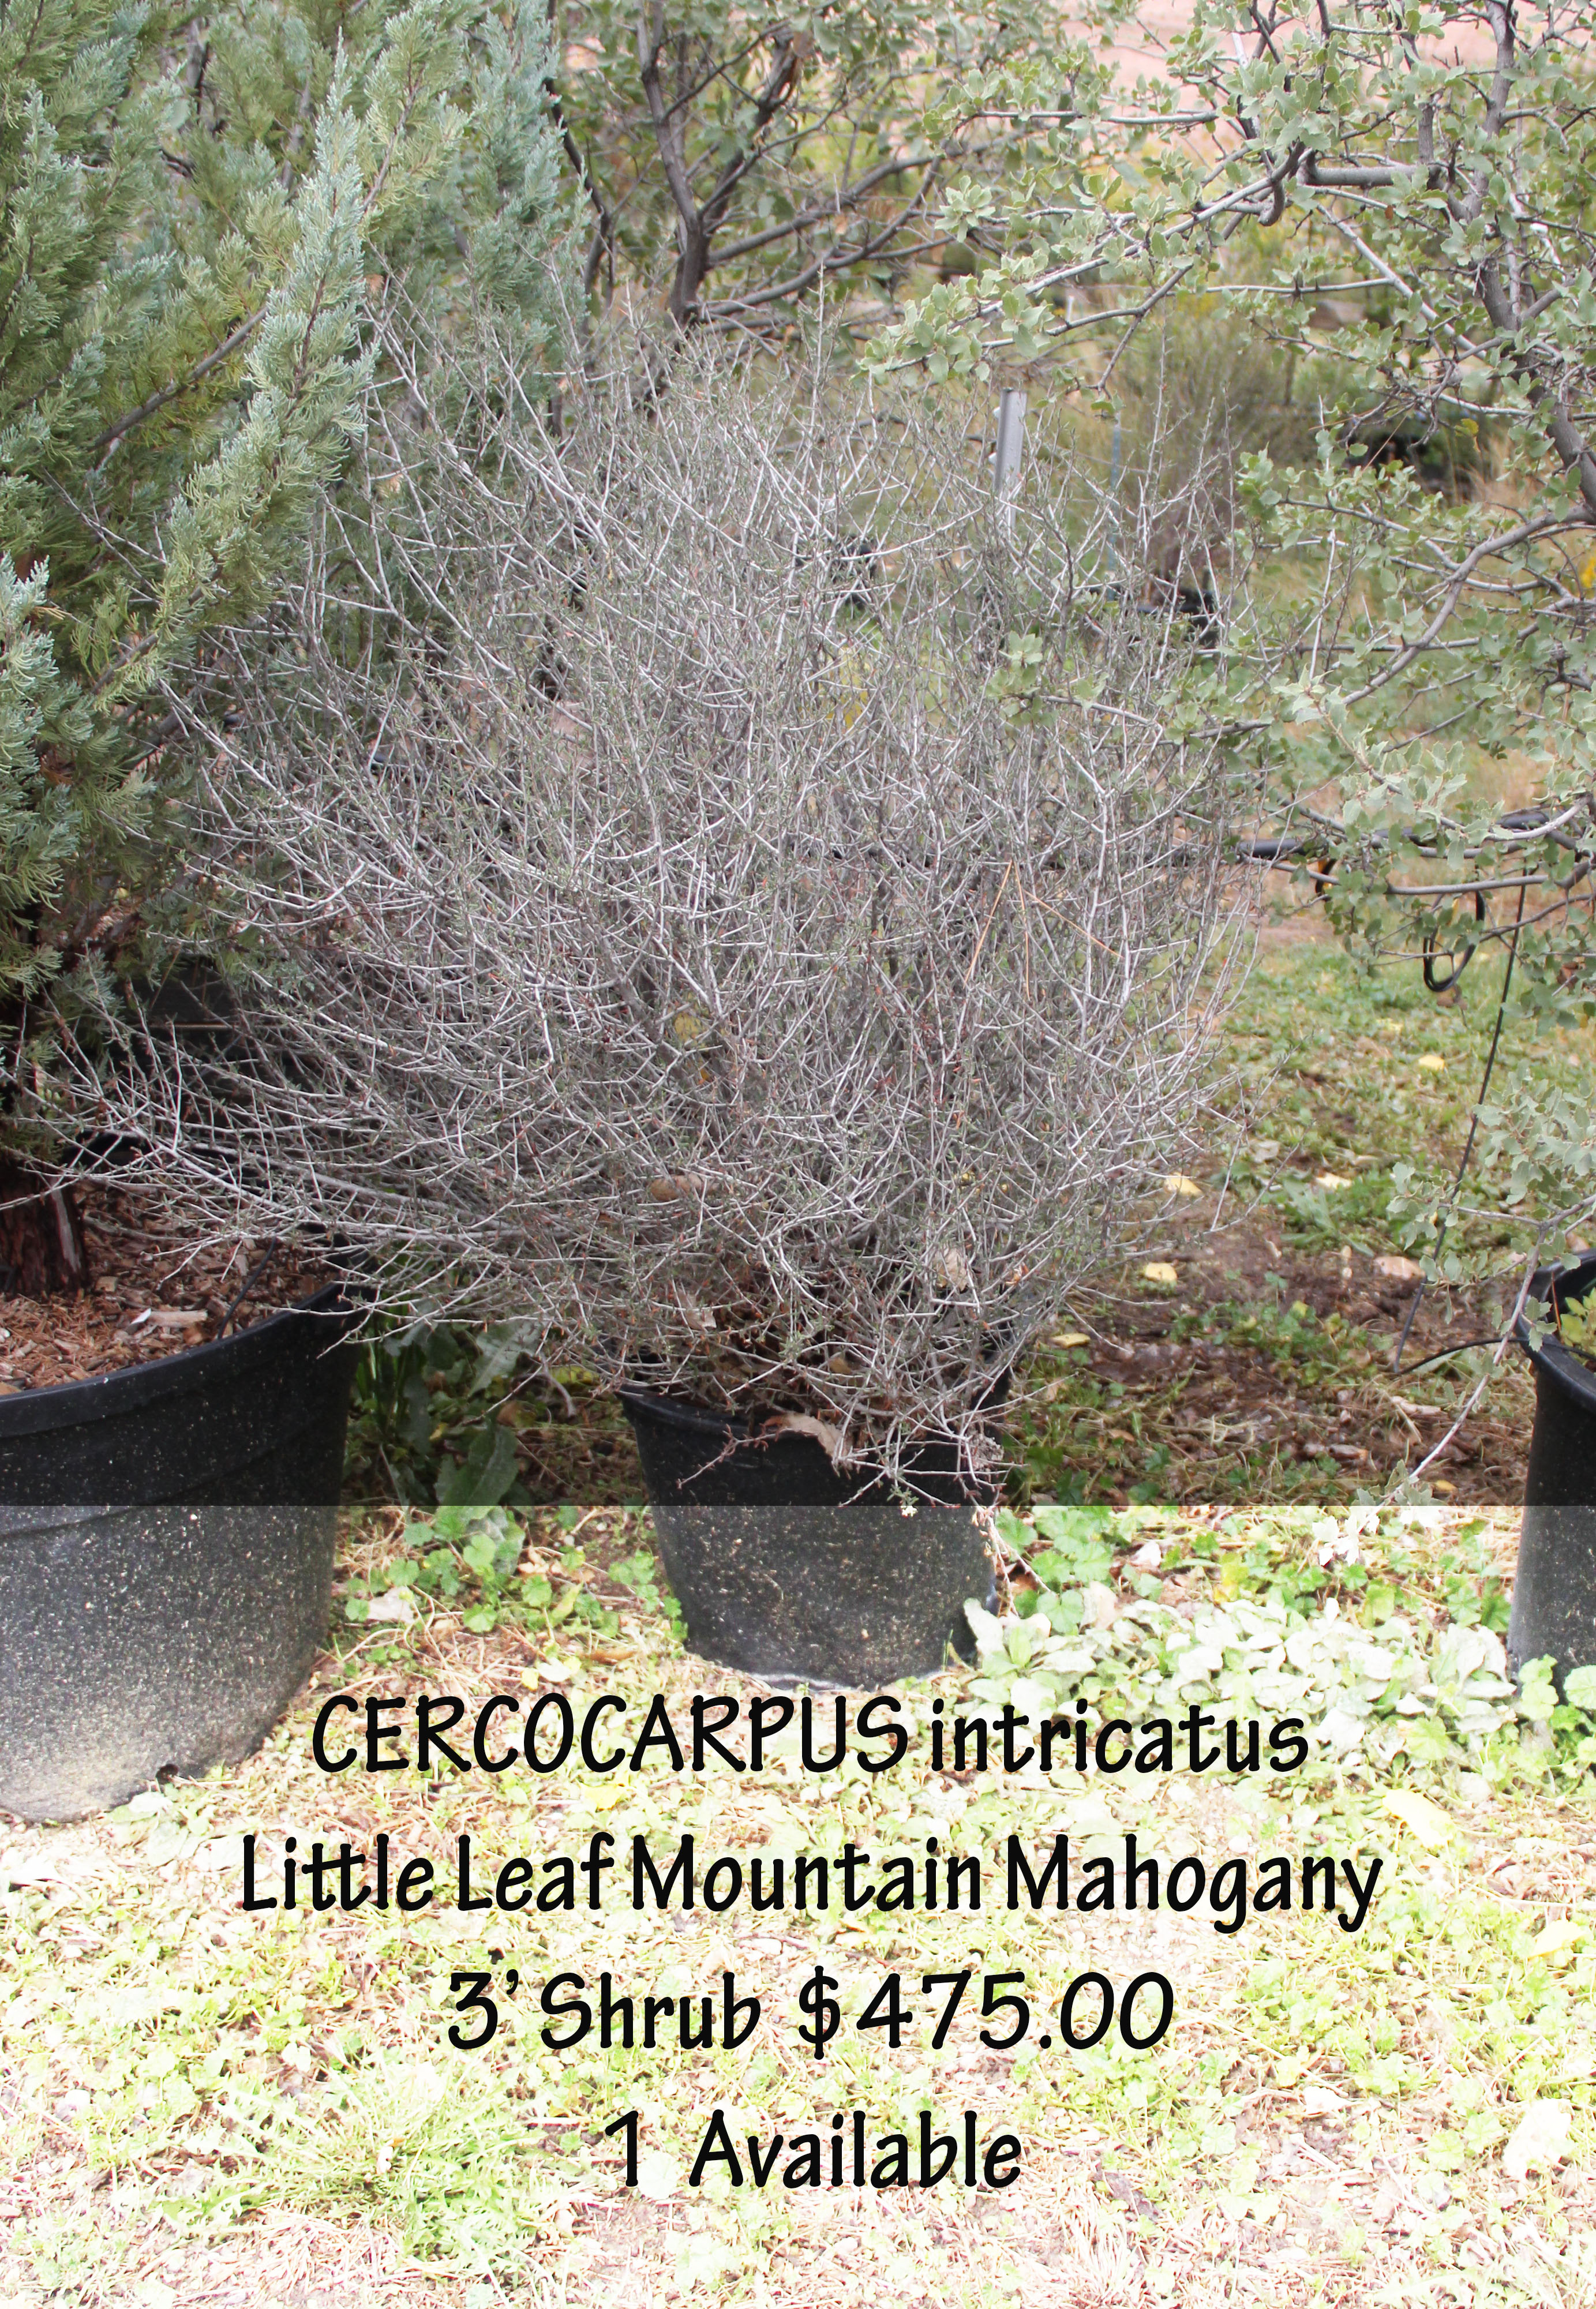 Little Leaf Mountain Mahogany